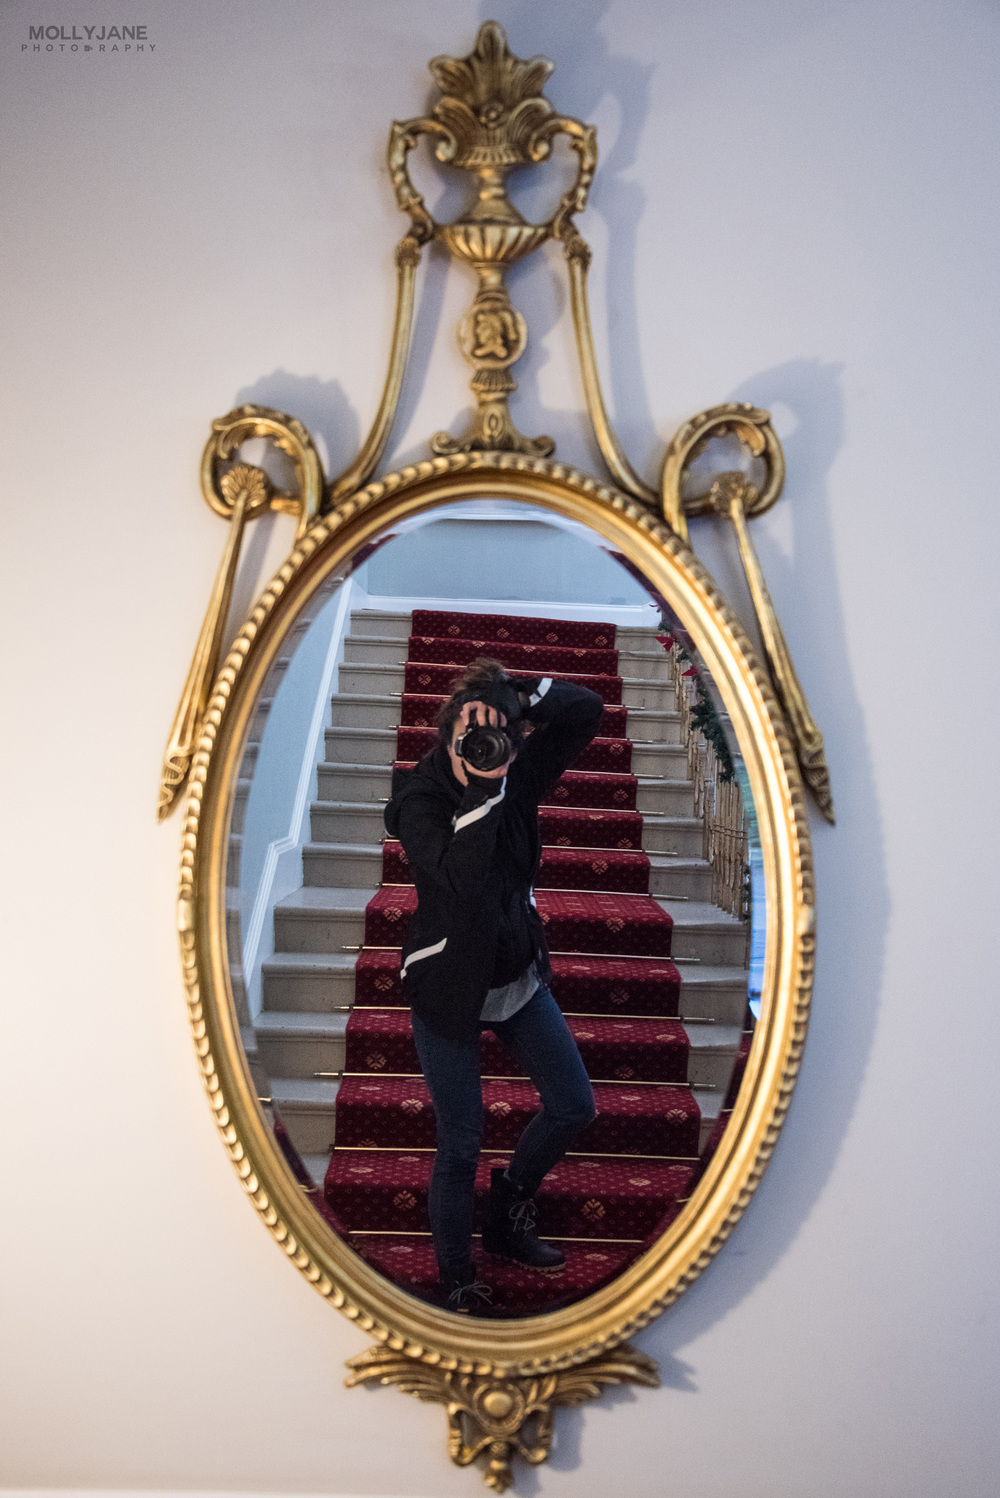 Grand staircase mirror